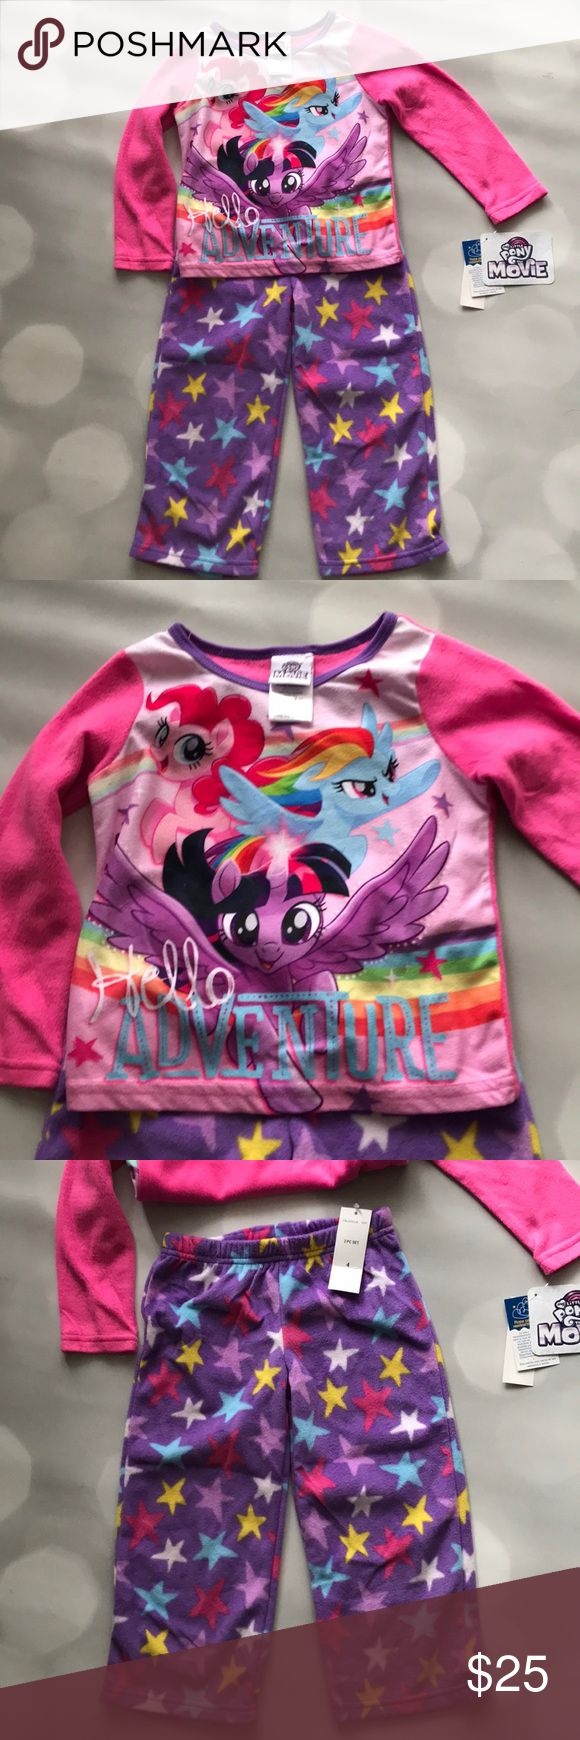 My Little Pony • fleece pajamas • my little pony the movie  • really soft and comfy fleece • size 4 Girls • brand new with tags  • flame resistant  😍 My Little Pony Pajamas Pajama Sets